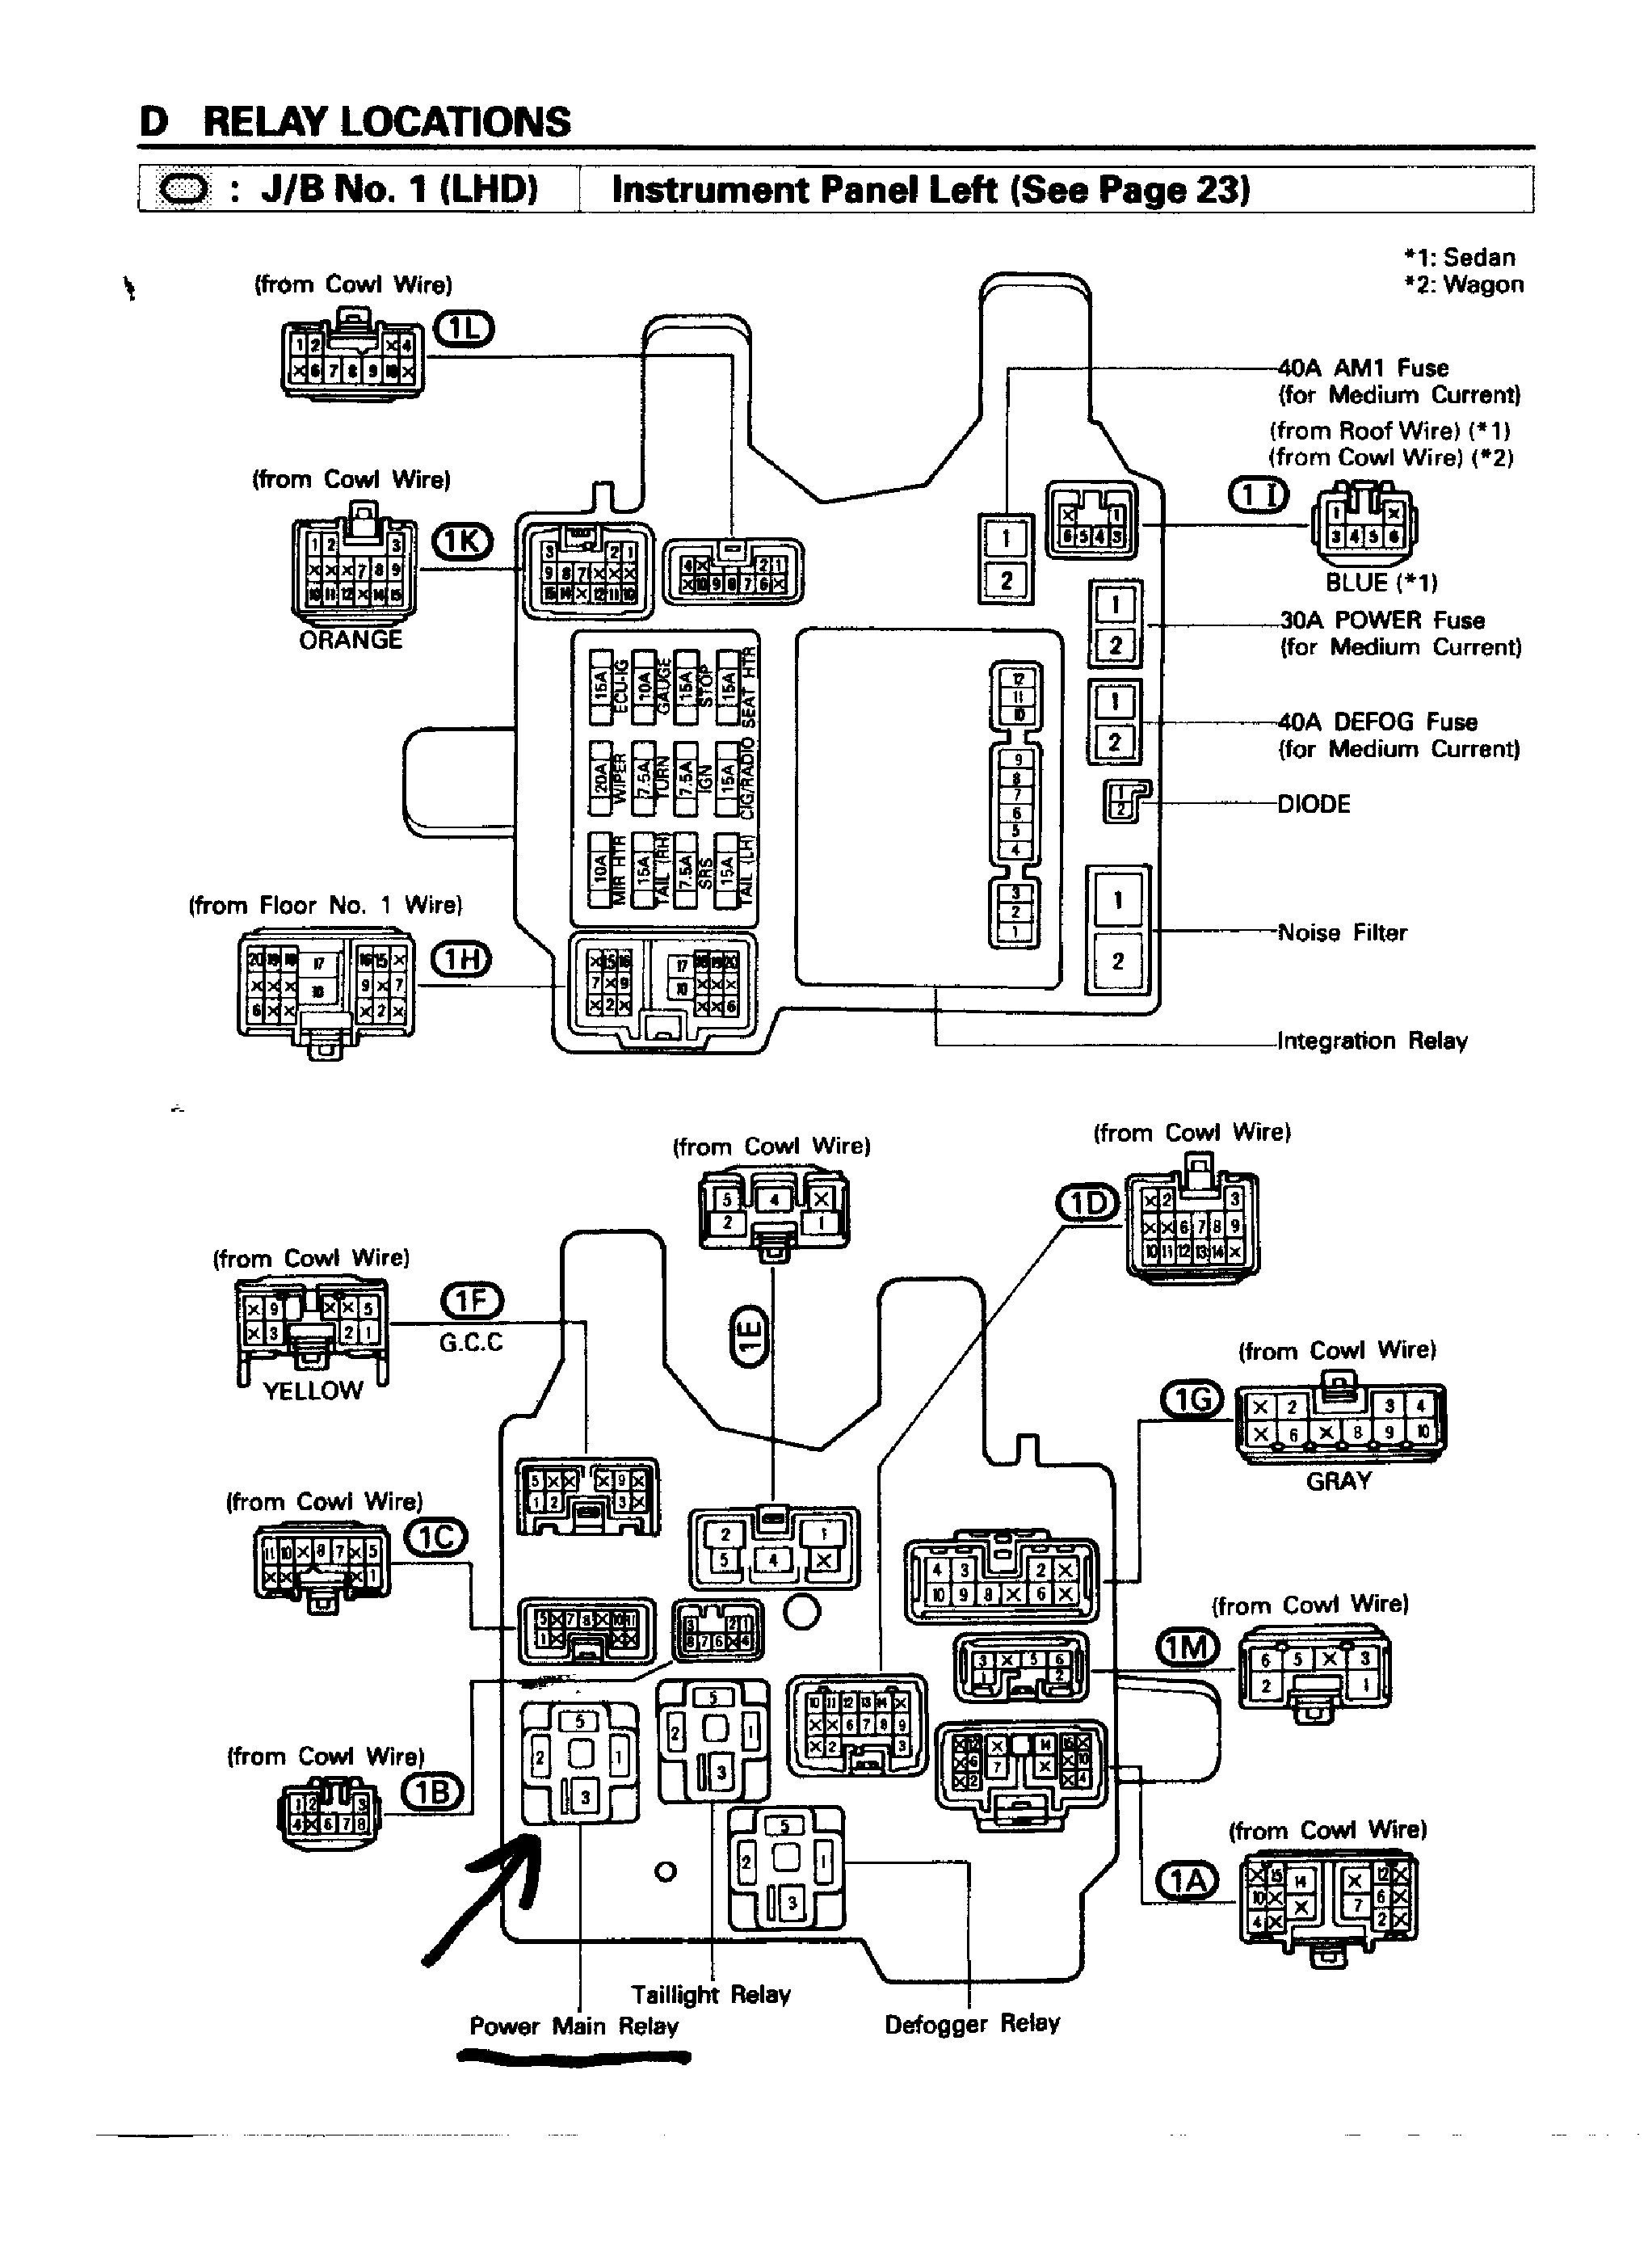 05 Camry Engine Electrical Diagram - Basic Wiring Diagram • on yukon wiring diagram, traverse wiring diagram, challenger wiring diagram, armada wiring diagram, g6 wiring diagram, celica wiring diagram, matrix wiring diagram, galant wiring diagram, forester wiring diagram, land cruiser wiring diagram, avalon wiring diagram, legacy wiring diagram, fusion wiring diagram, versa wiring diagram, echo wiring diagram, impreza wiring diagram, es 350 wiring diagram, regal wiring diagram, lesabre wiring diagram, van wiring diagram,